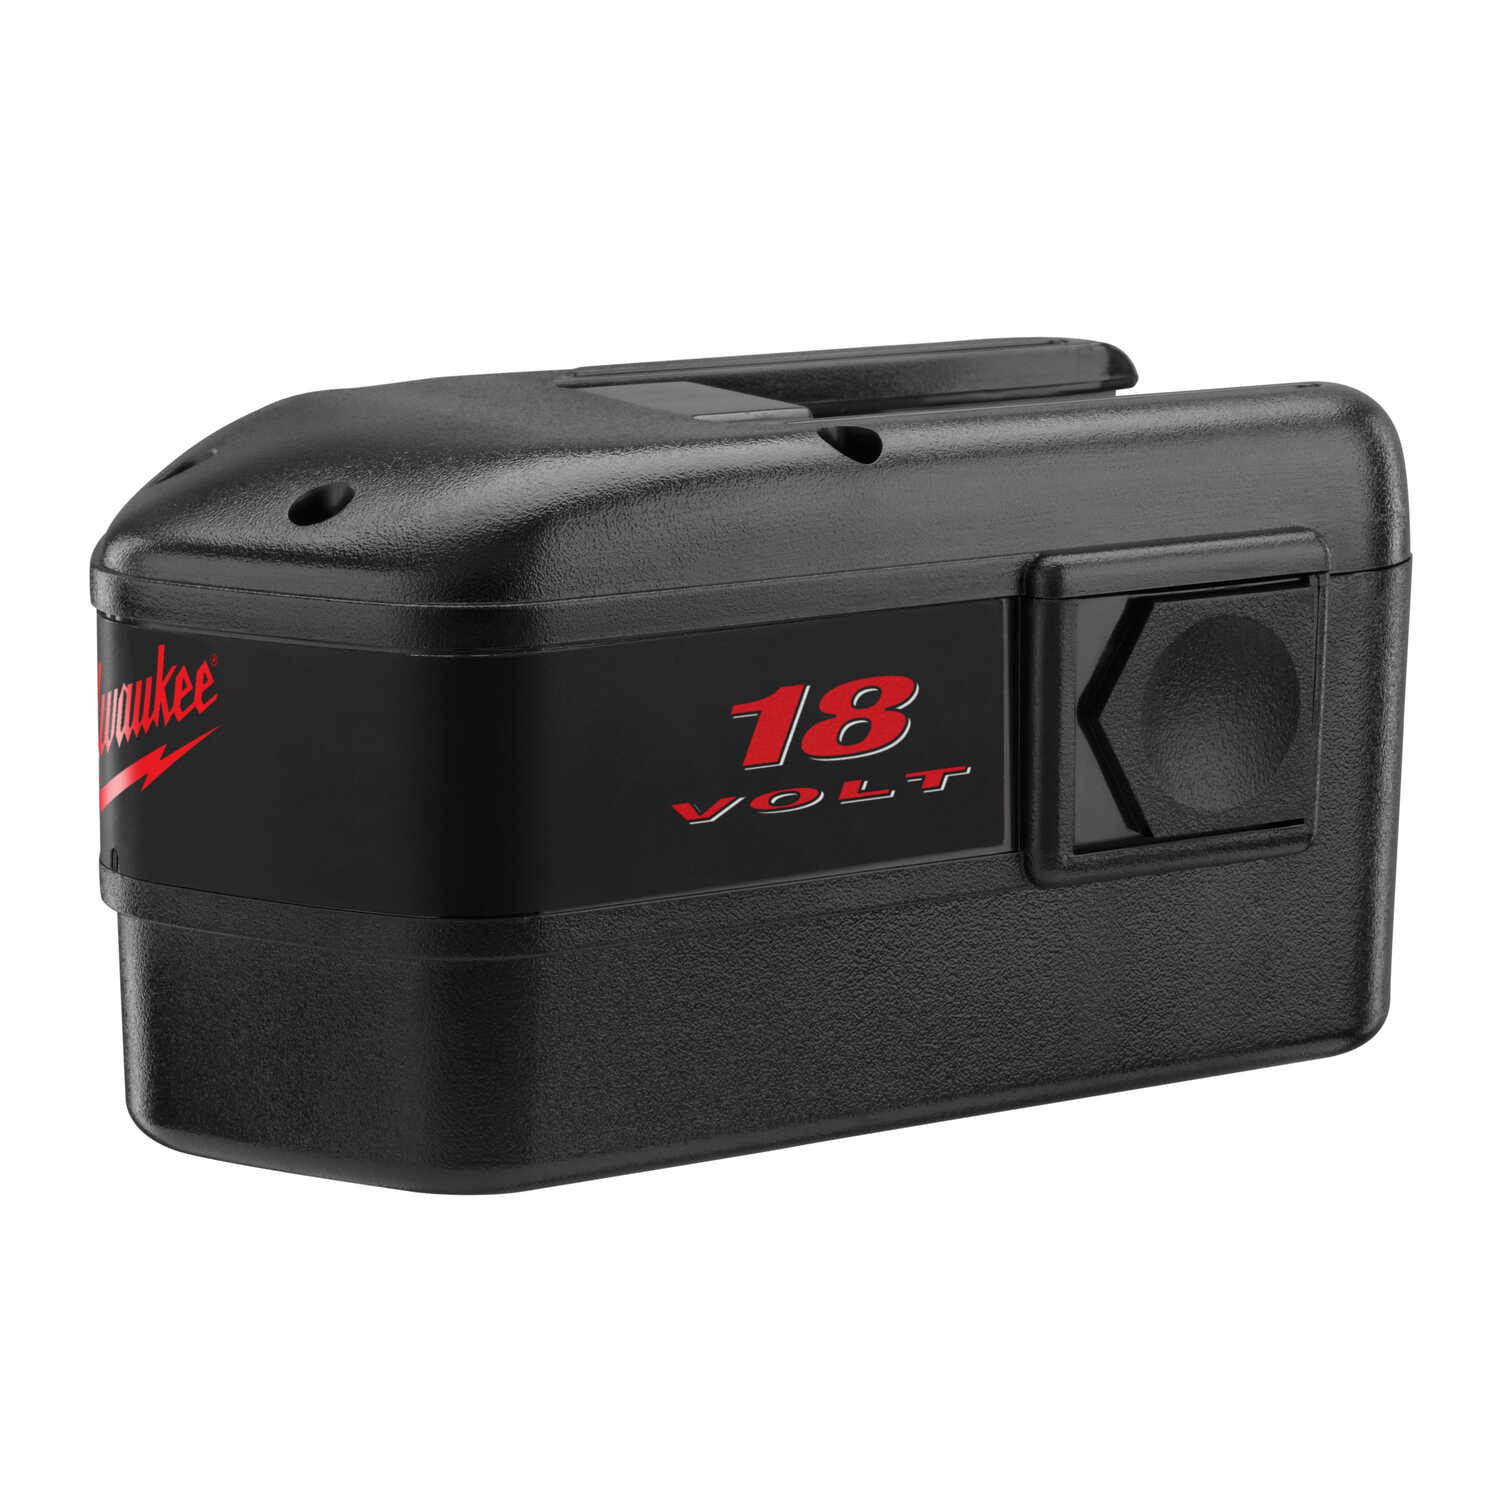 Milwaukee  18 volt 2.4 Ah Ni-Cad  Battery Pack  1 pc.